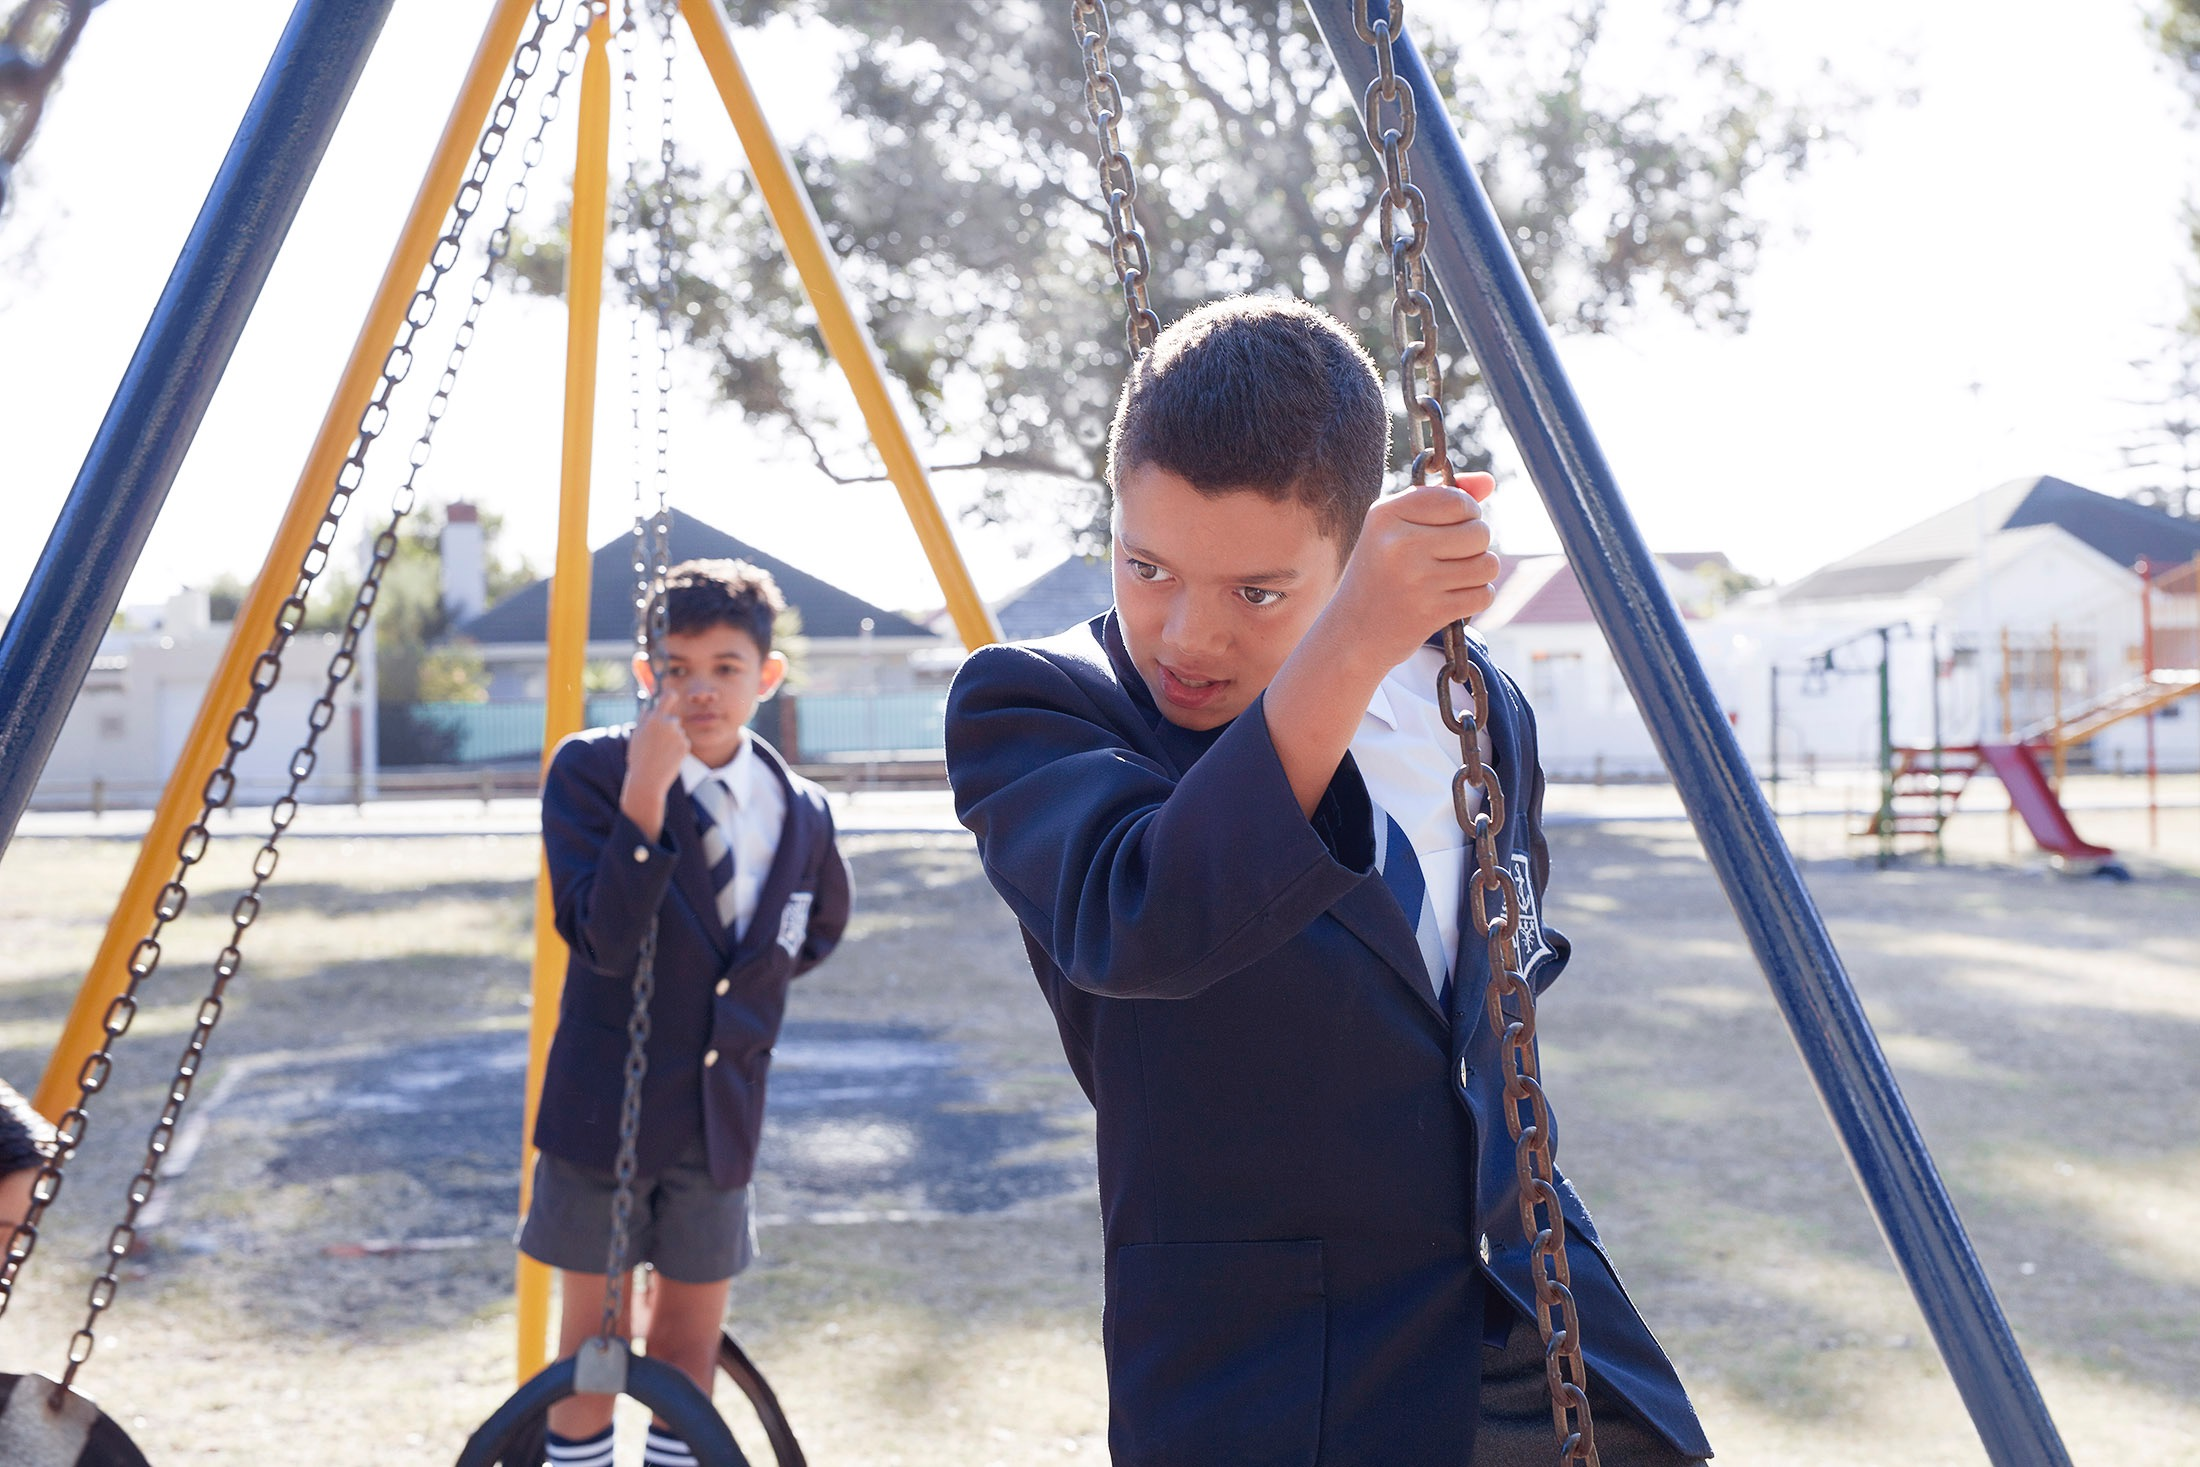 photo photography photographer school uniform education boy boys friends climb climbing playgound